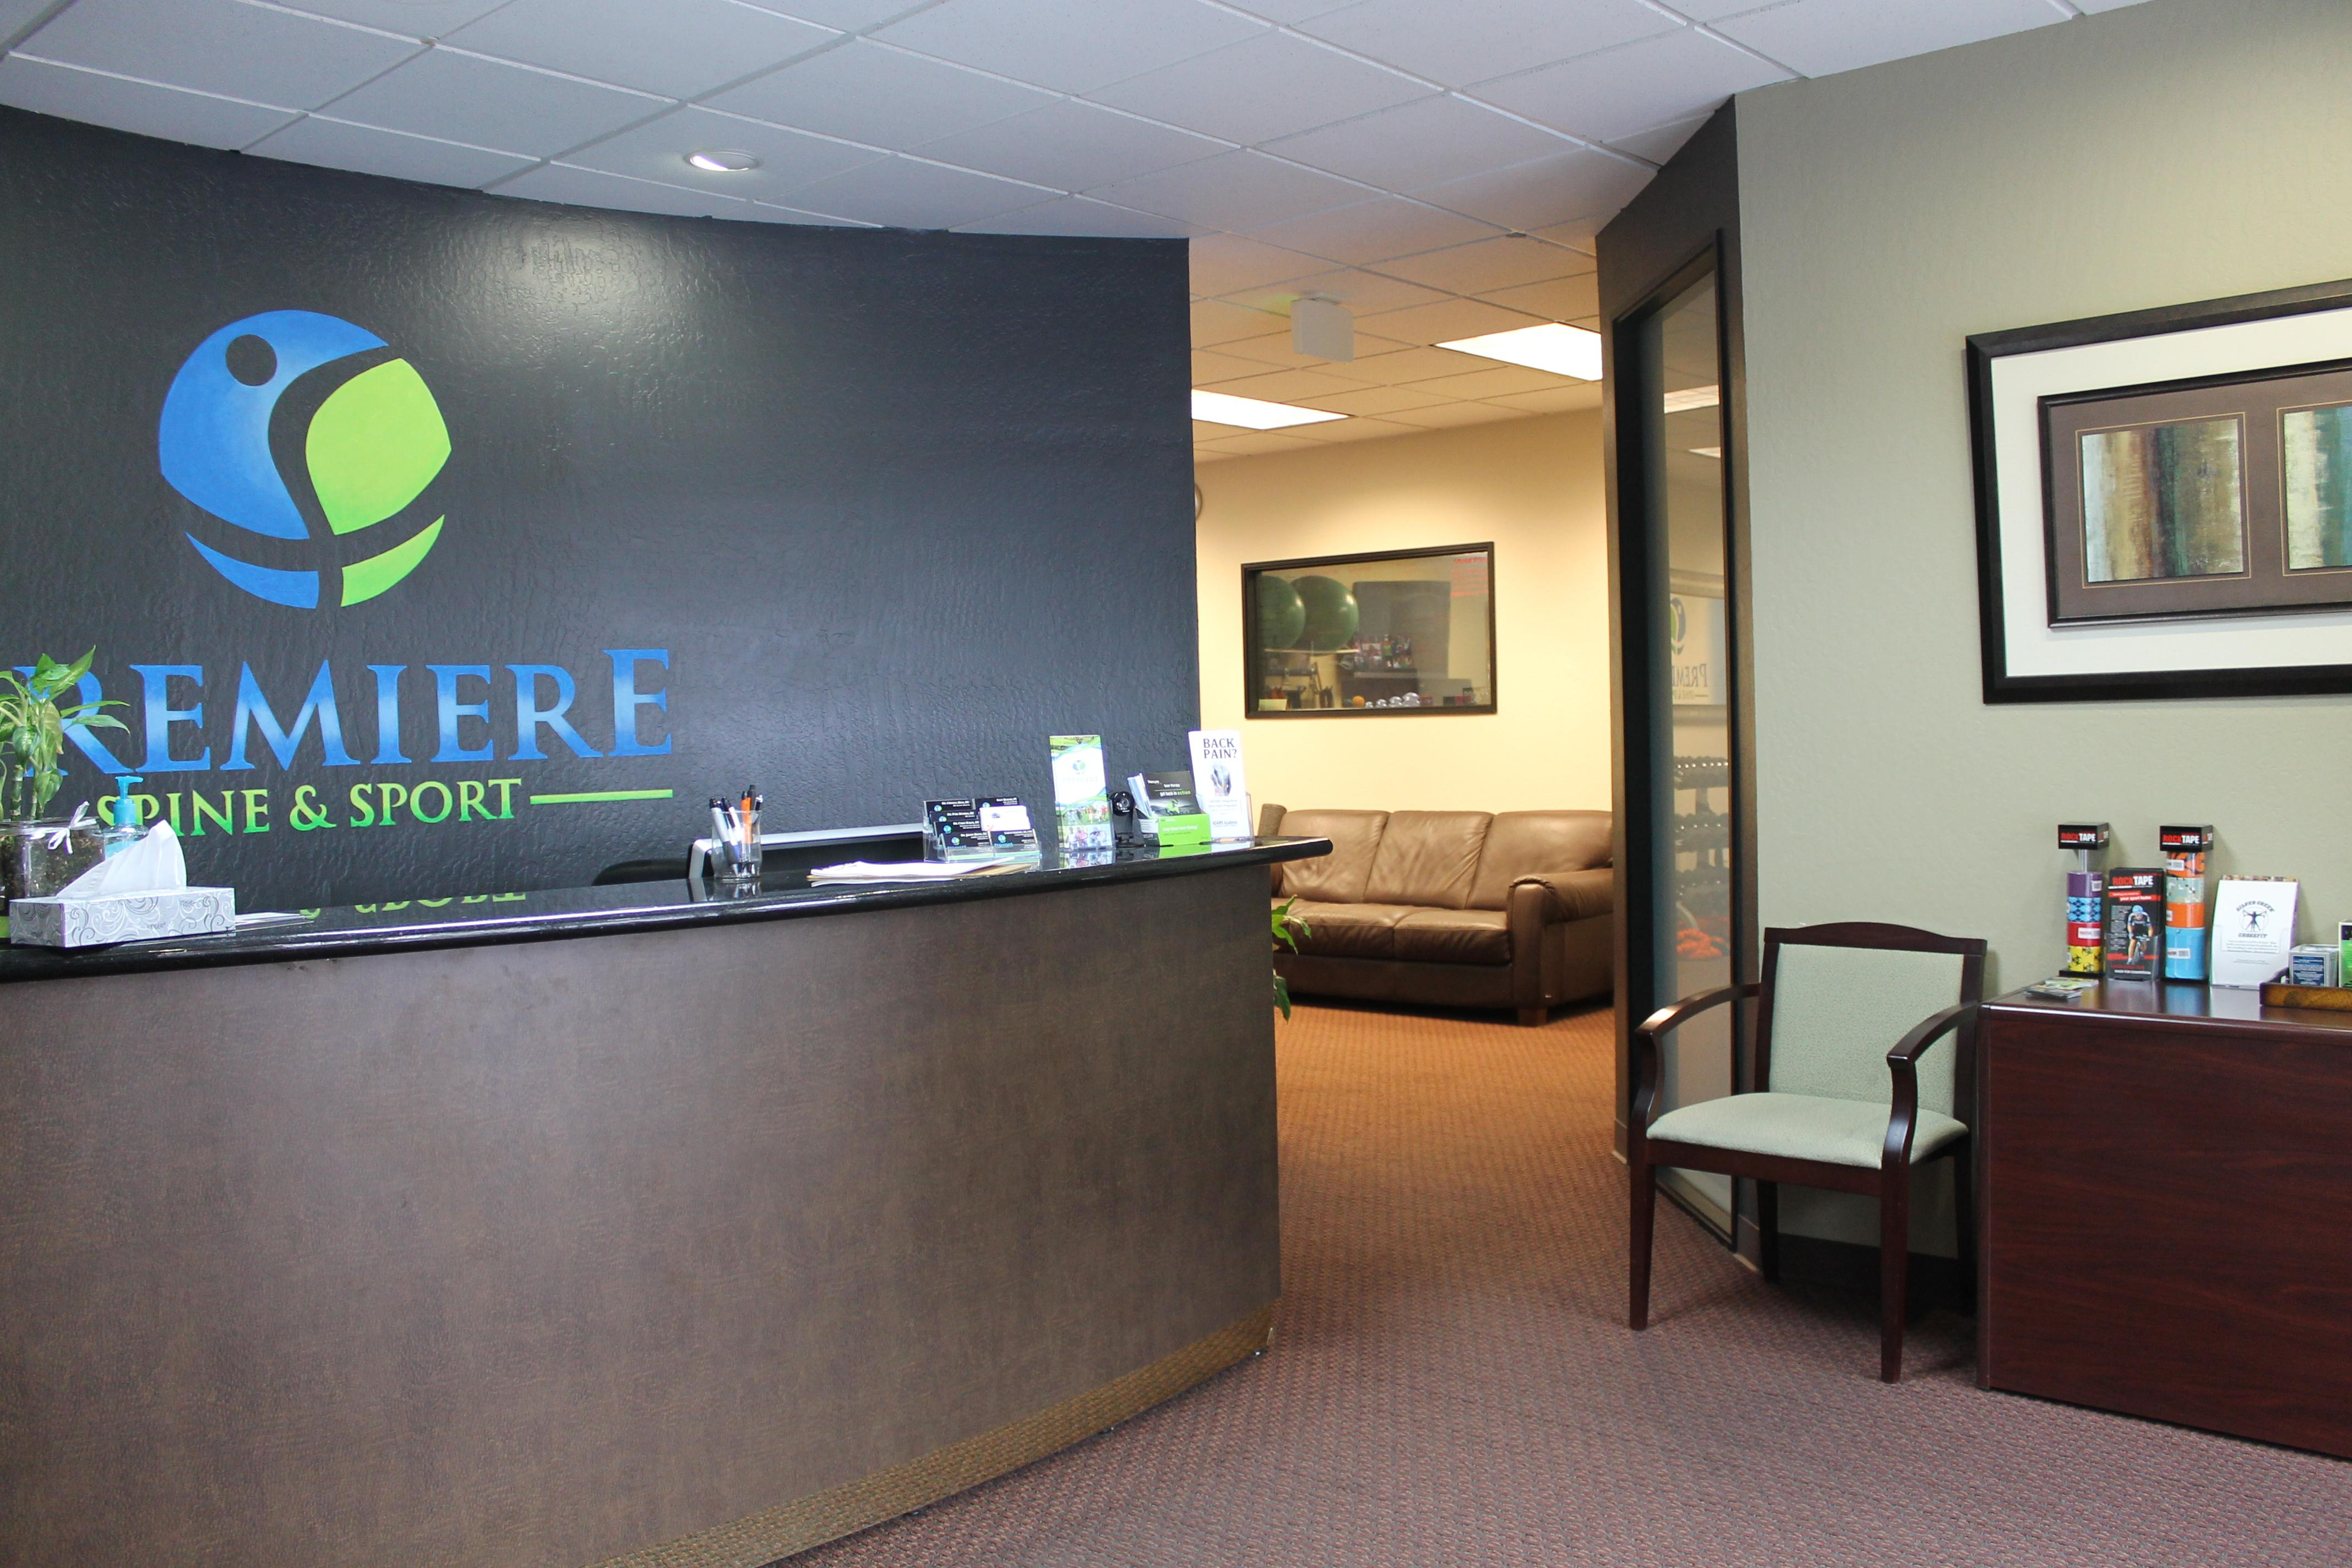 Spinal Decompression Spinal Decompression San Jose Ca